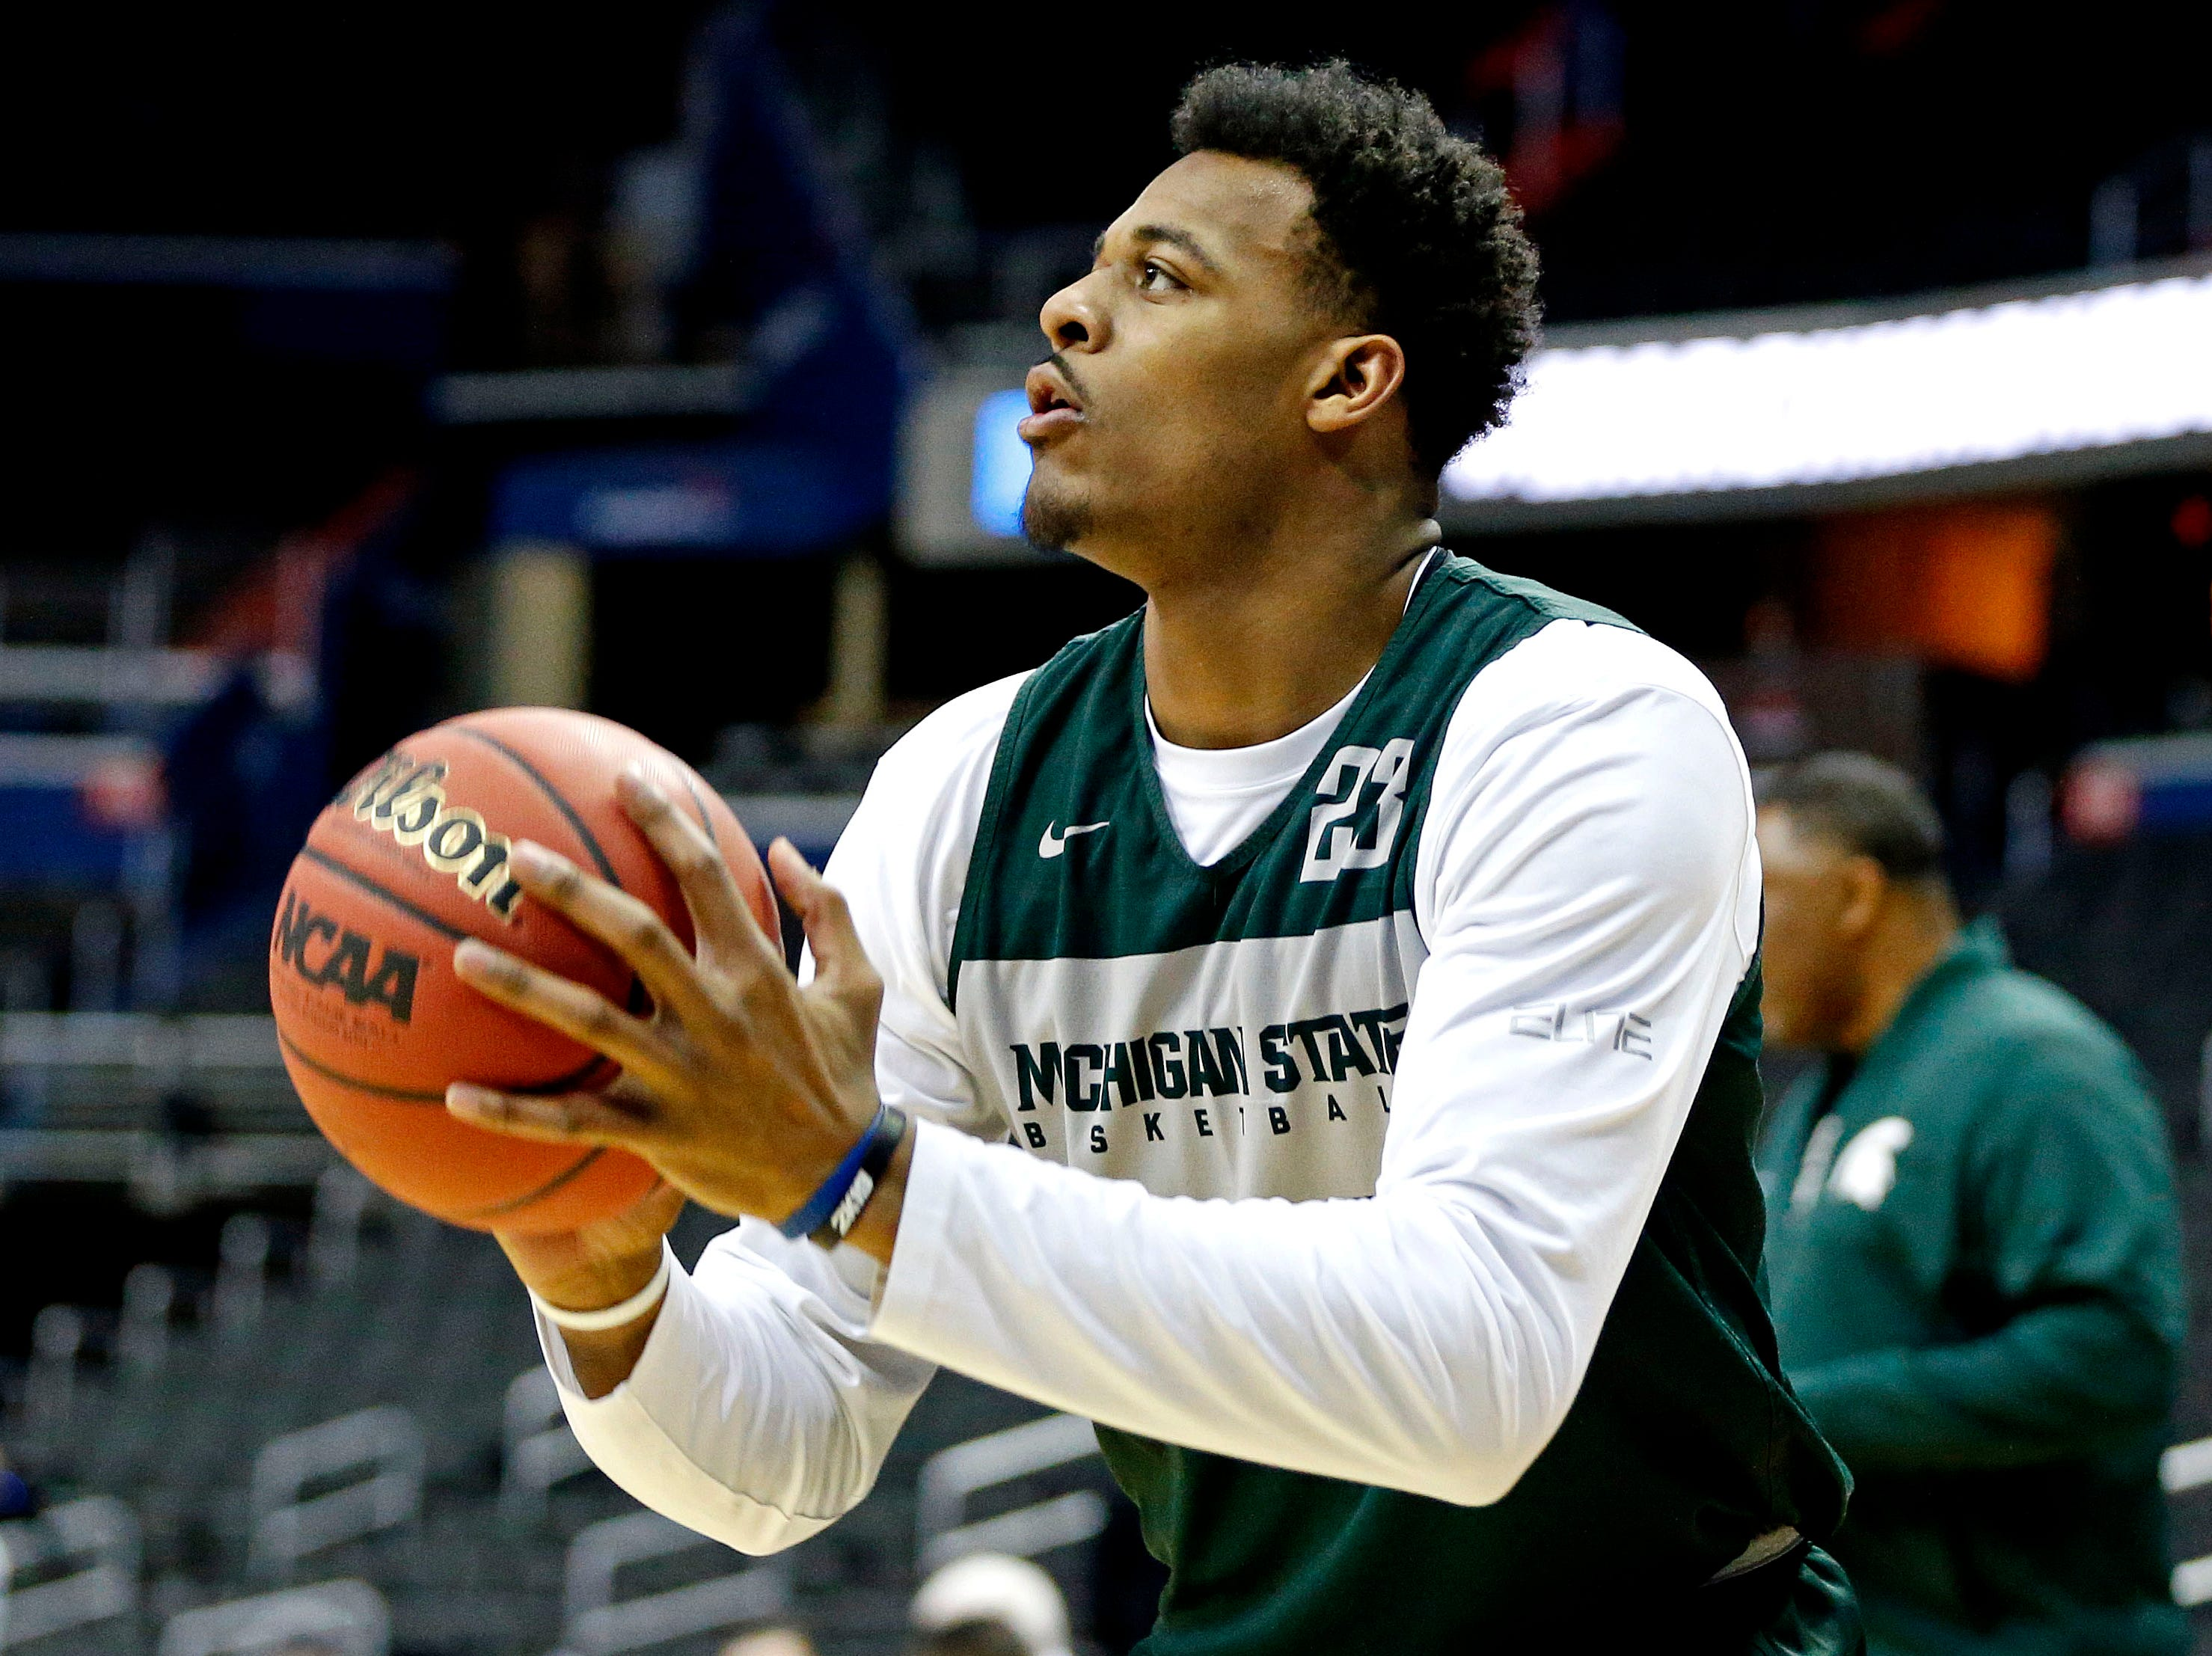 Mar 28, 2019; Washington, DC, USA; Michigan State Spartans forward Xavier Tillman (23) shoots the ball during practice for the east regional of the 2019 NCAA Tournament at Capital One Arena. Mandatory Credit: Amber Searls-USA TODAY Sports